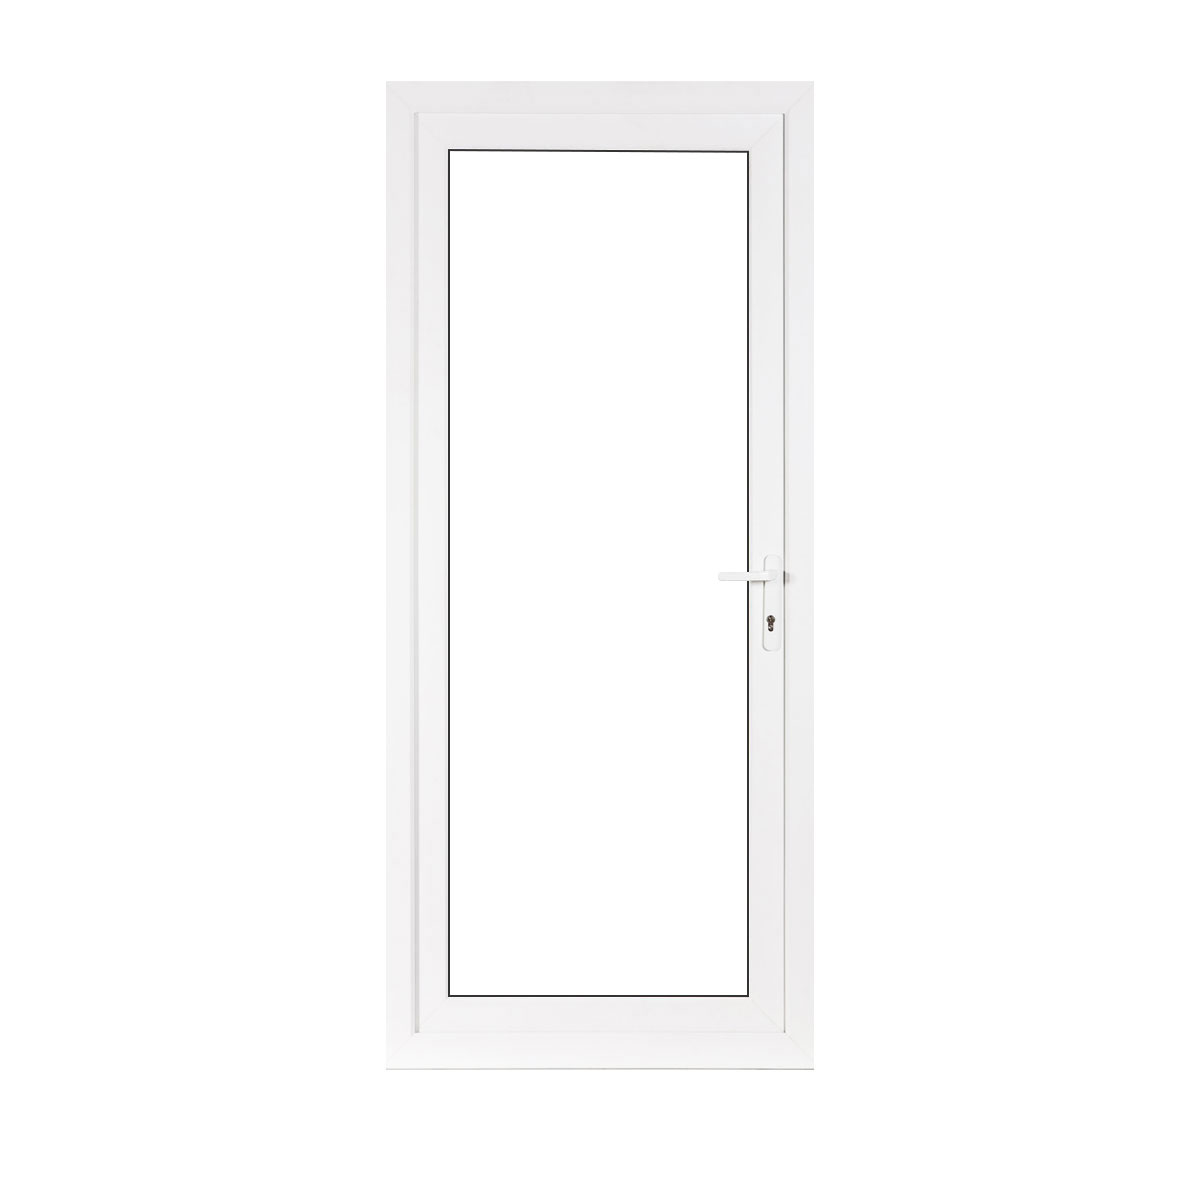 Full glass upvc back door flying doors for Exterior back doors with glass